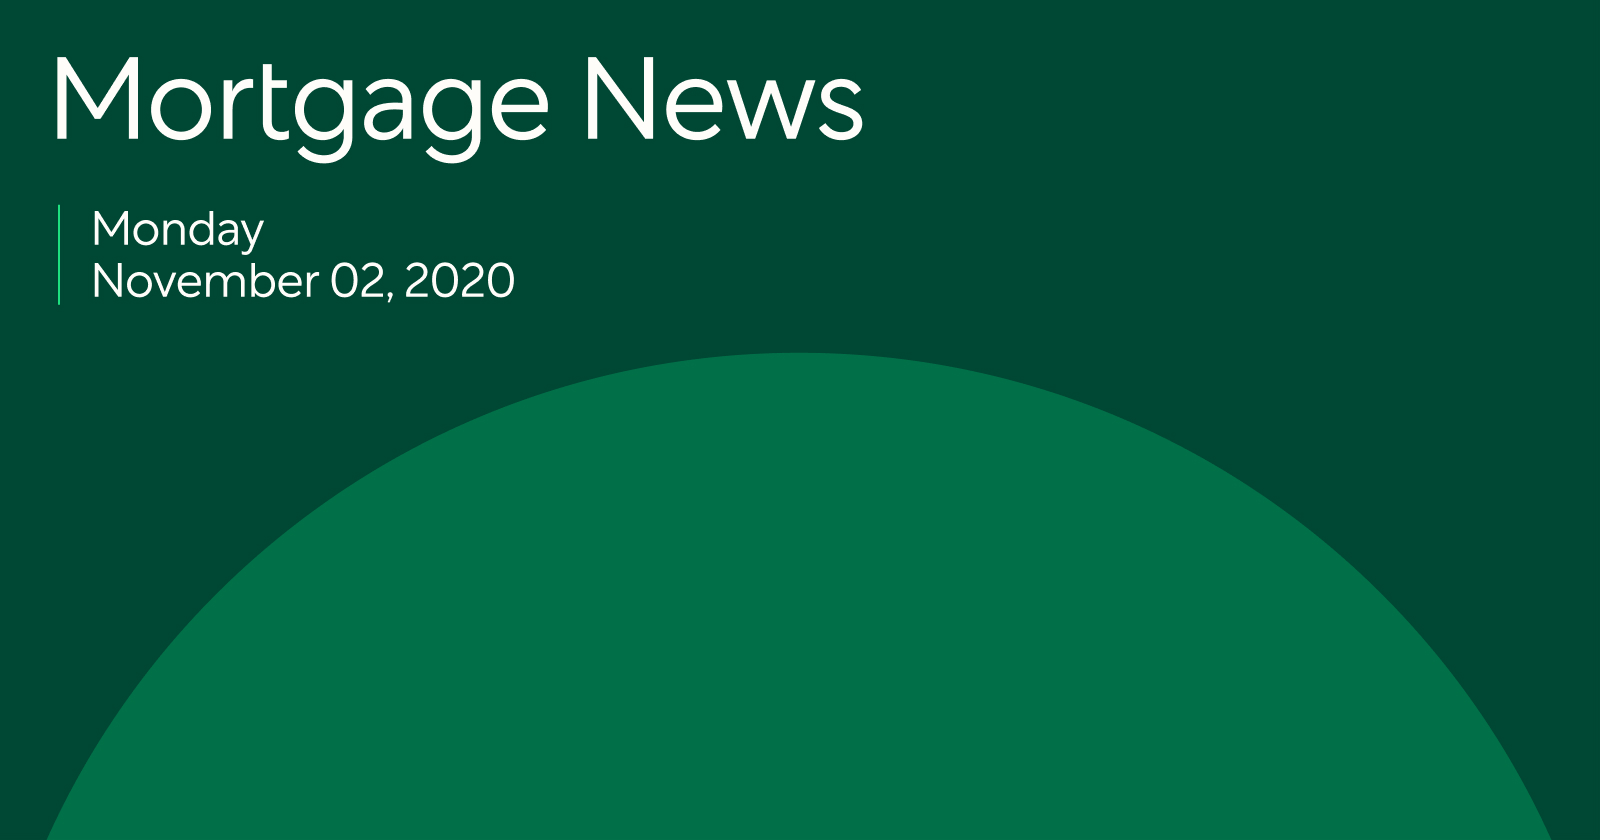 Mortgage News 11/2/20: Post-election rates likely to seesaw